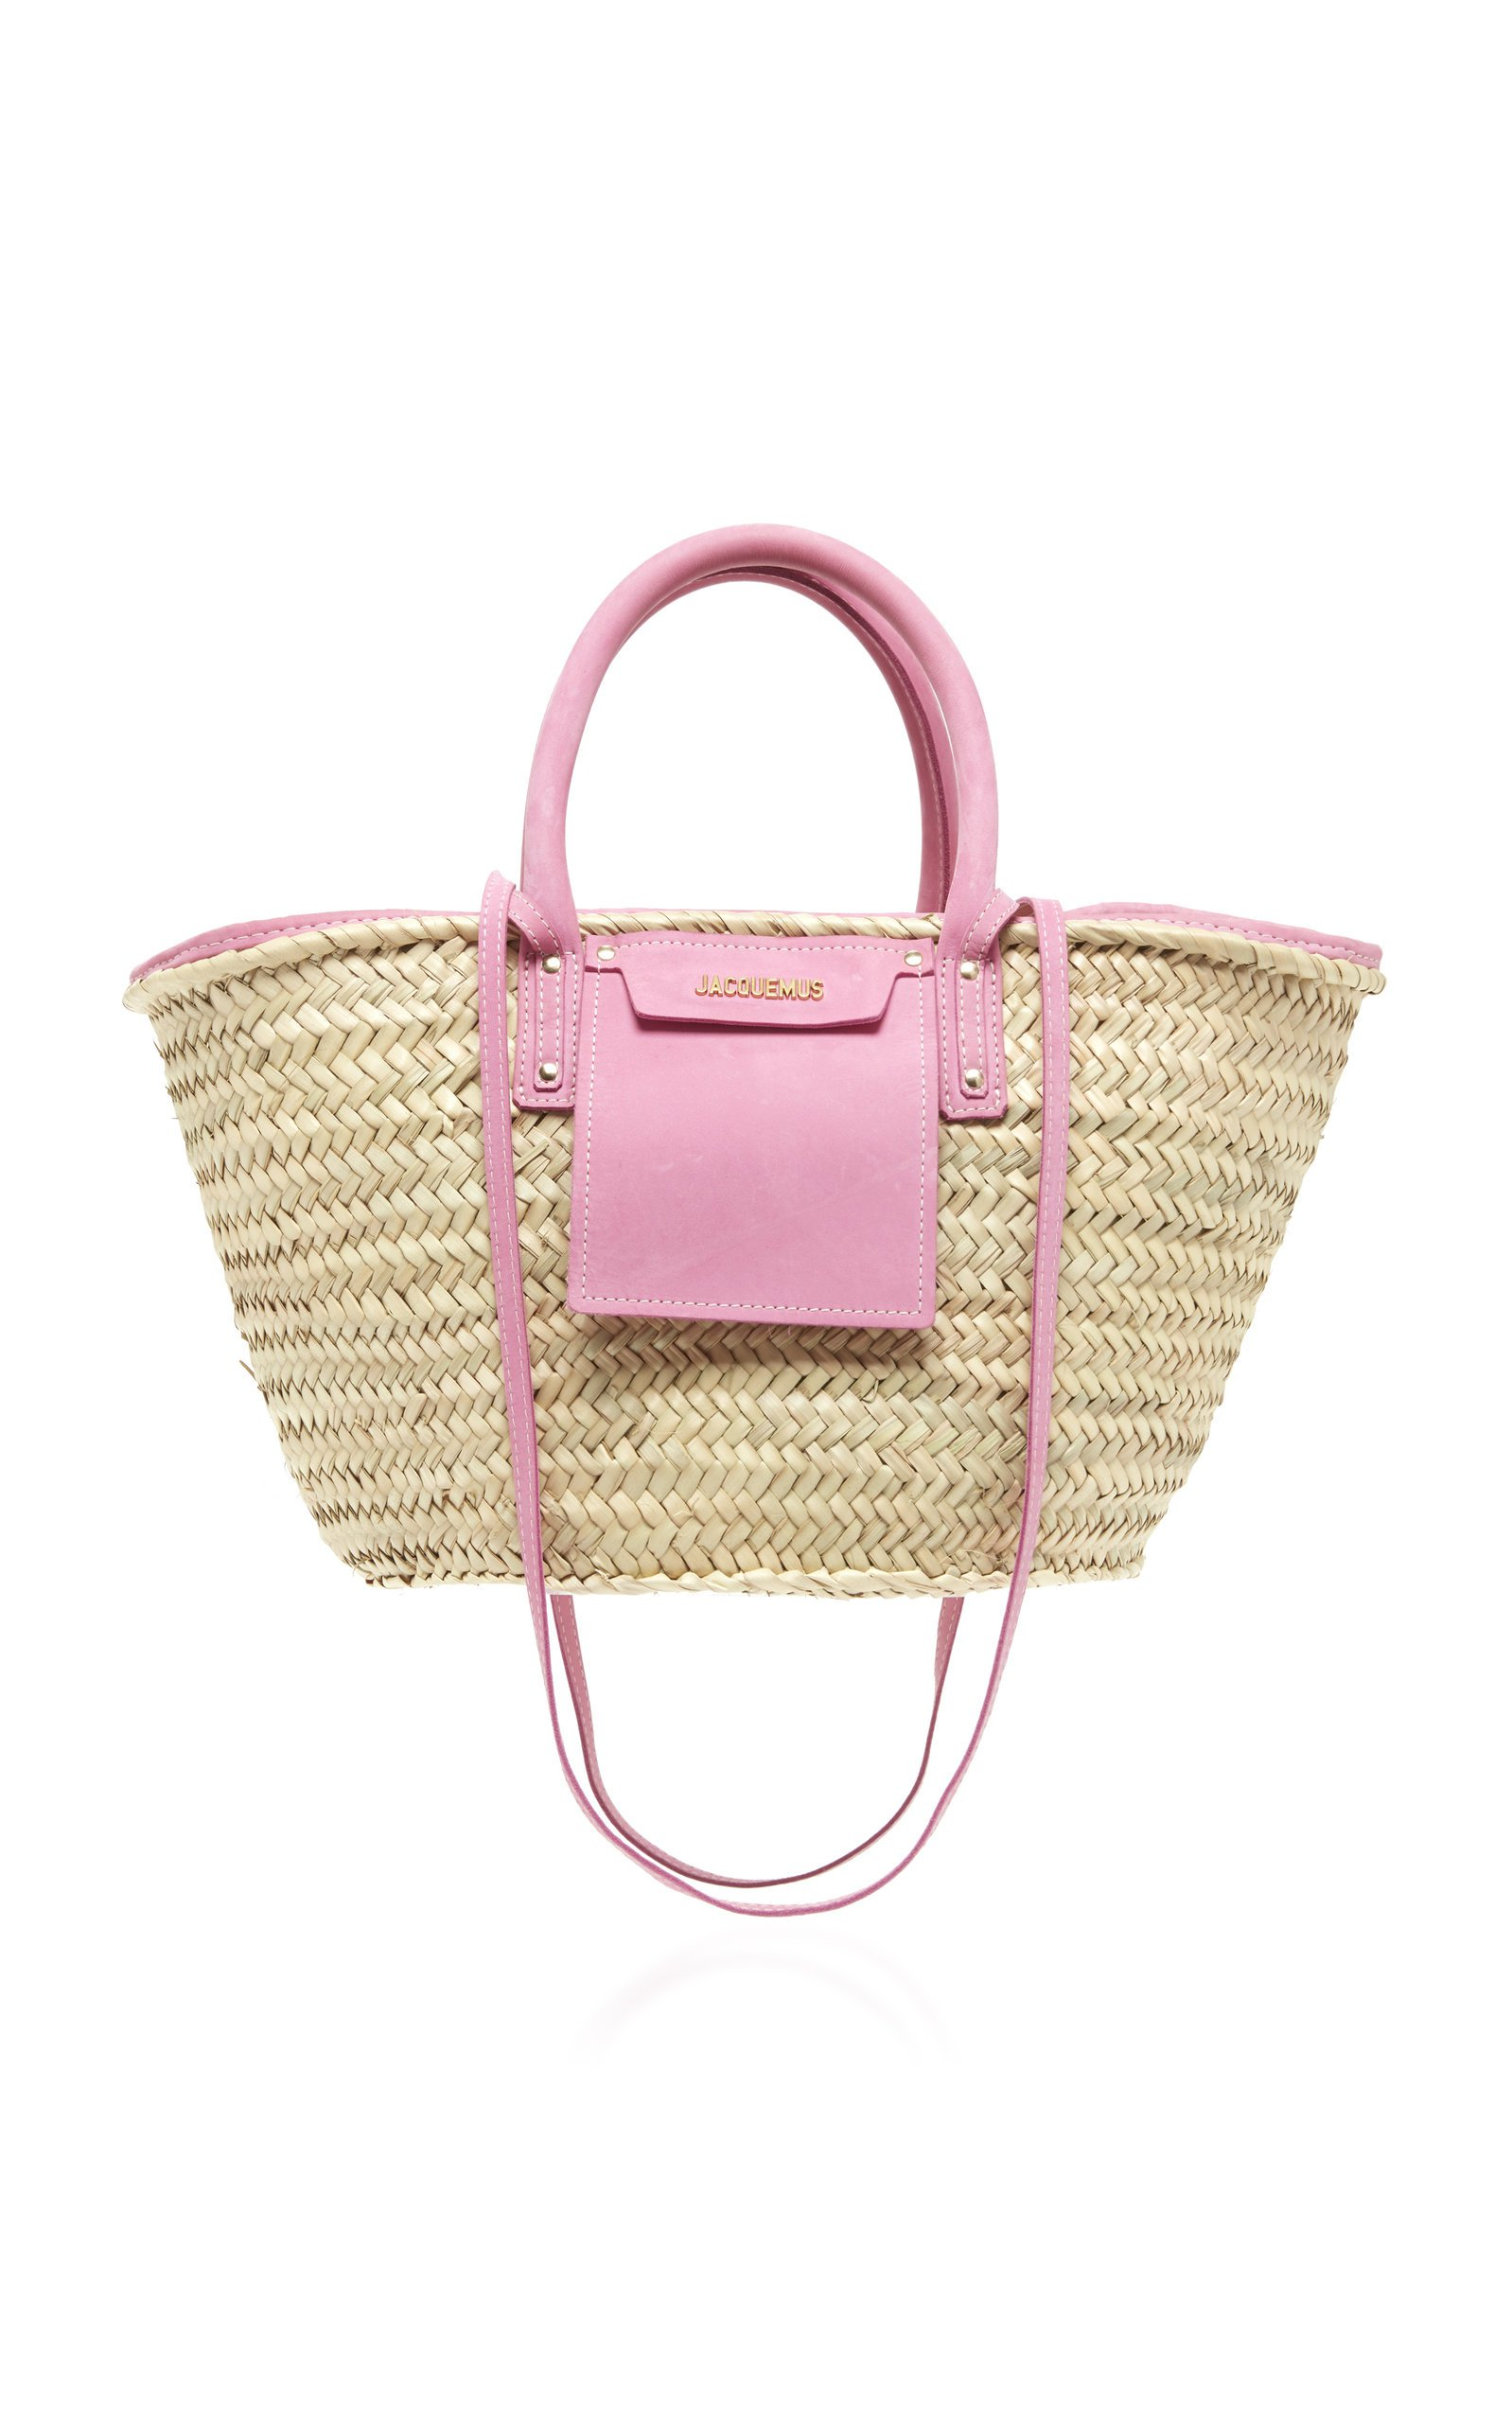 Le Panier Soleil Suede-Trimmed Straw Tote by Jacquemus   Moda Operandi